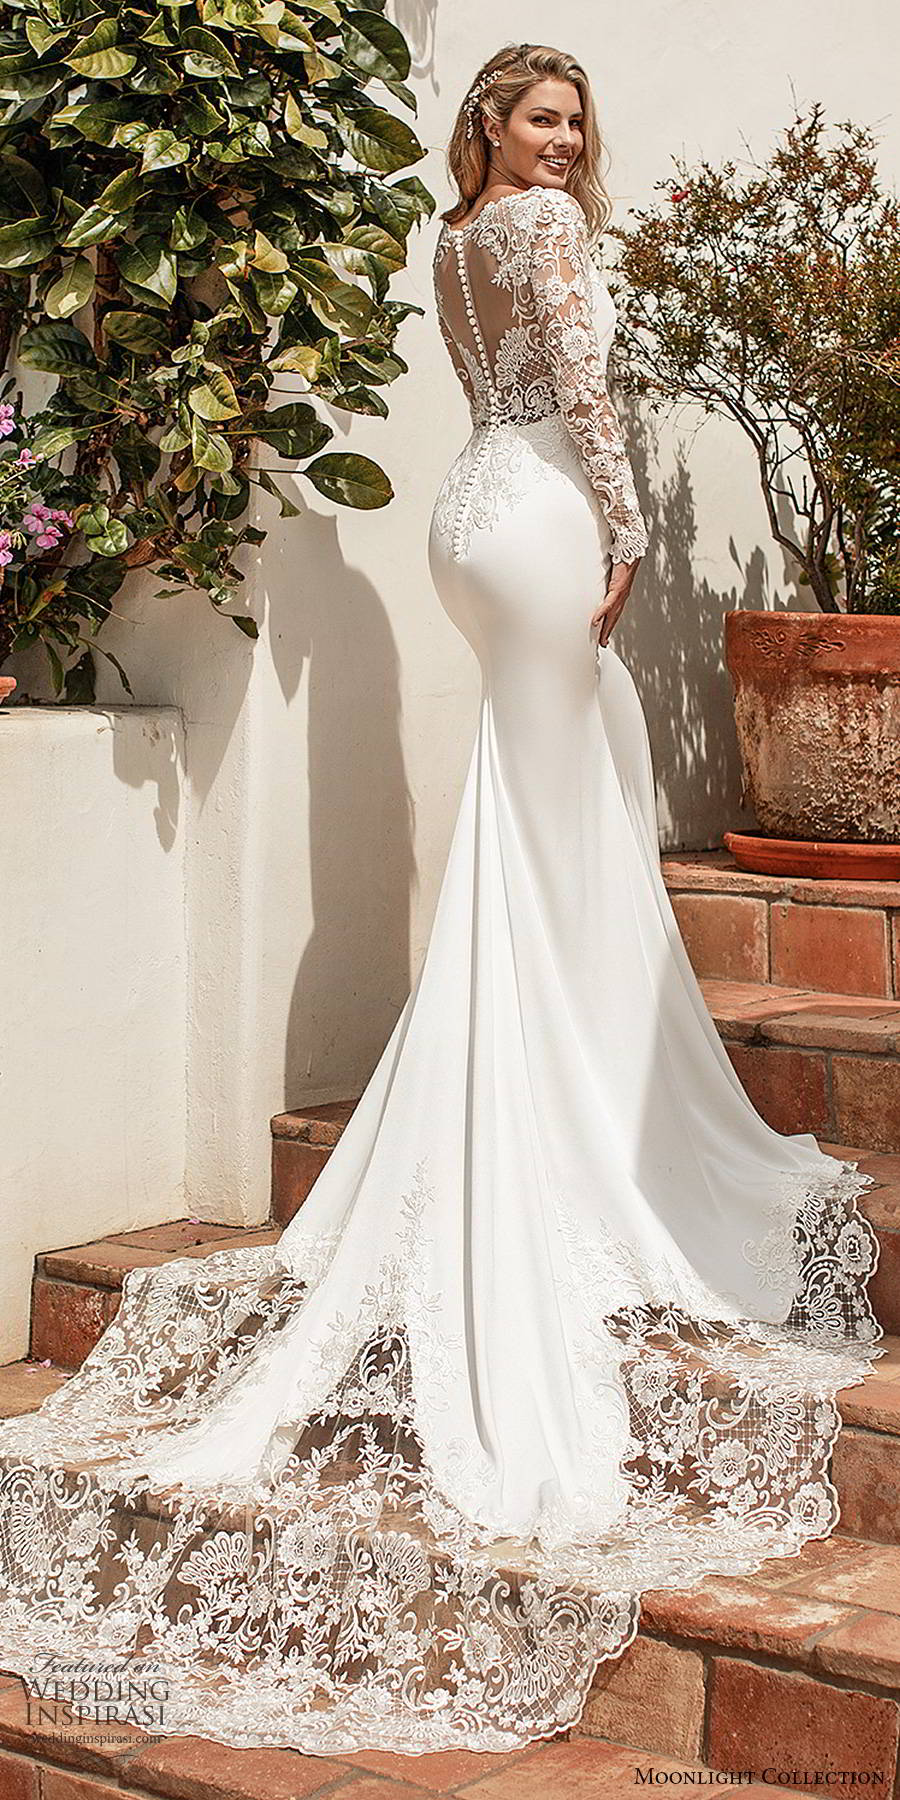 moonlight collection spring 2020 bridal illusion lace long sleeves bateau neckline clean bodice minimalist elegant sheath wedding dress illusion back chapel train (3) bv